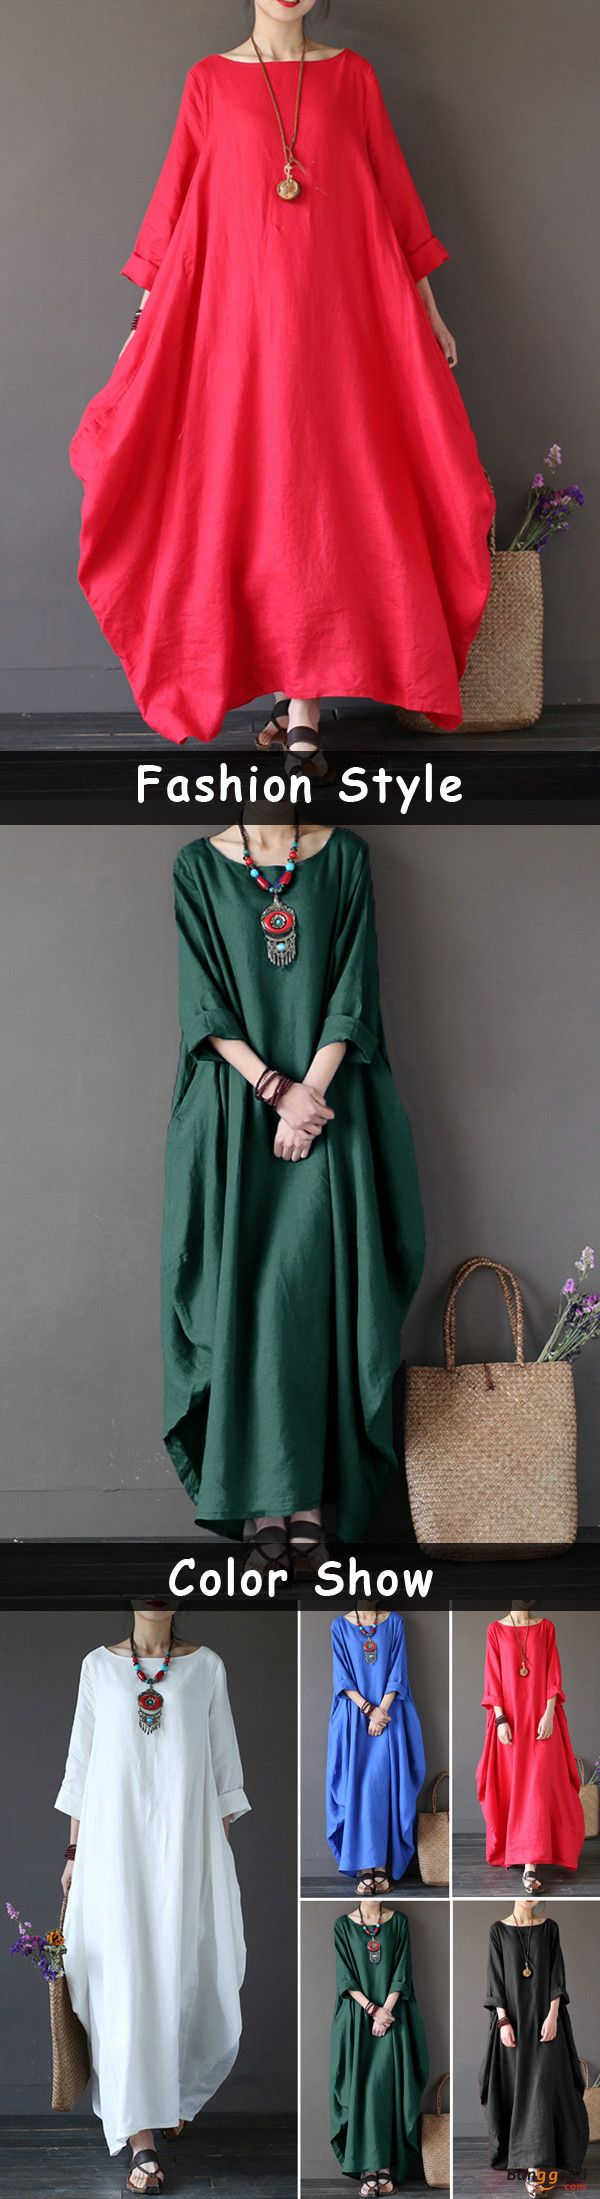 US$25.59+Free shipping. Women Dresses, Long Dresses, Dresses Casual, Dresses for Teens, Summer Dresses, Summer Outfits, Retro Fashion. Home or out, love this retro summer dress. Style: Brief, Casual, Fashion. Color: Blue, Red, White, Black, Green.